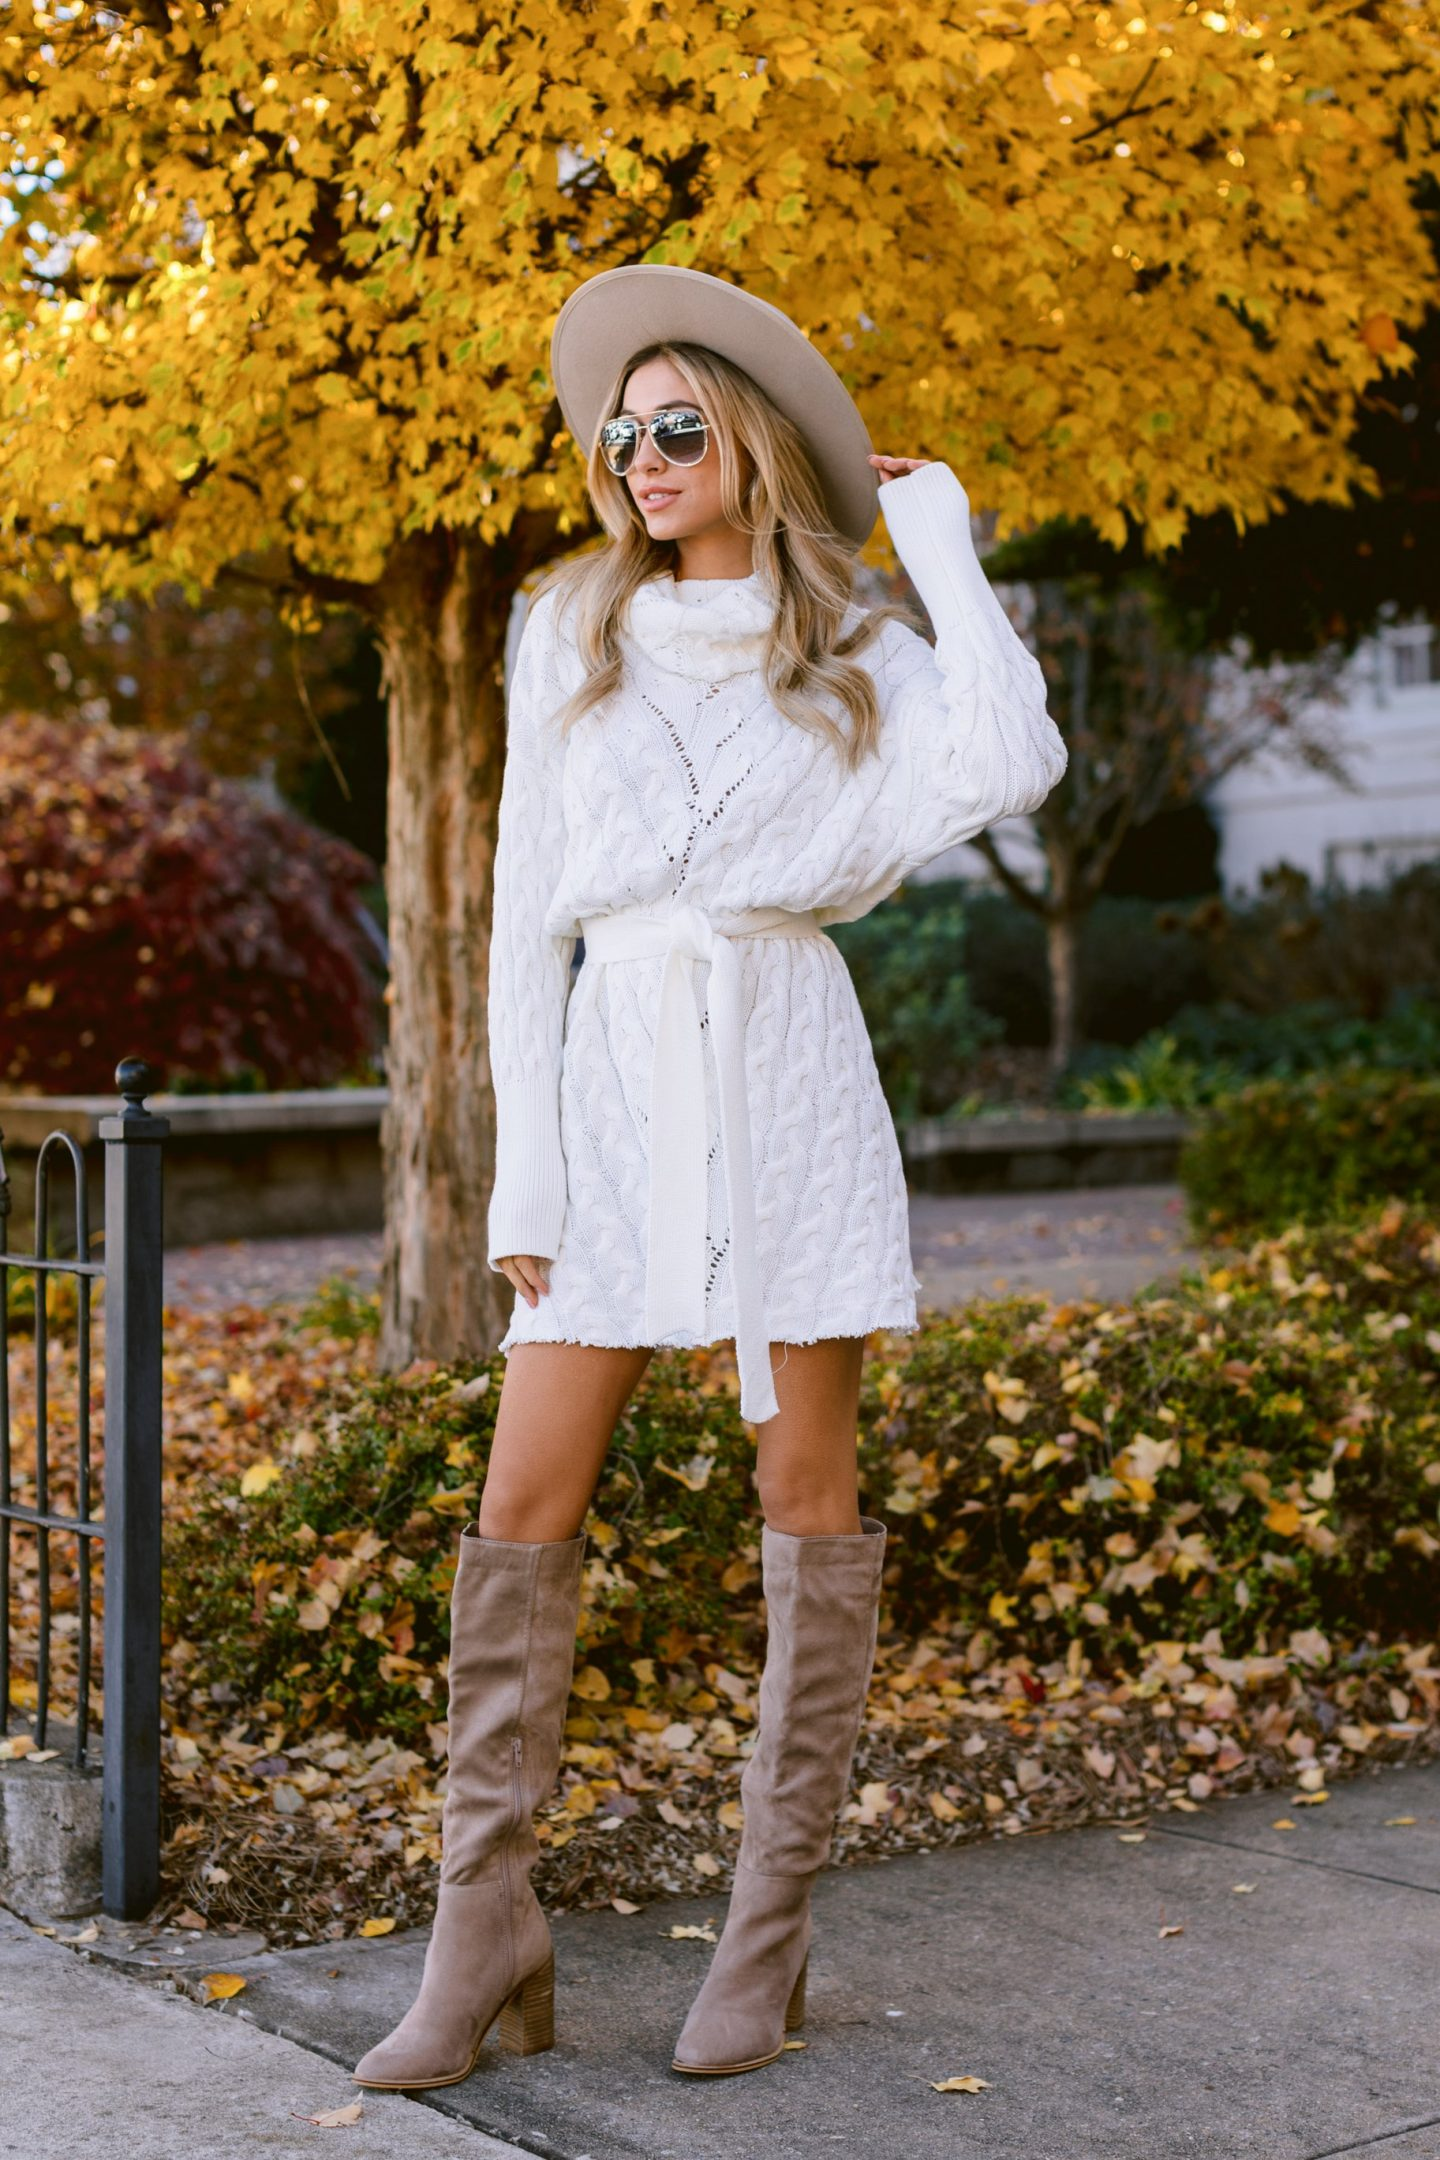 Cute white sweater dress outfit with over the knee boots